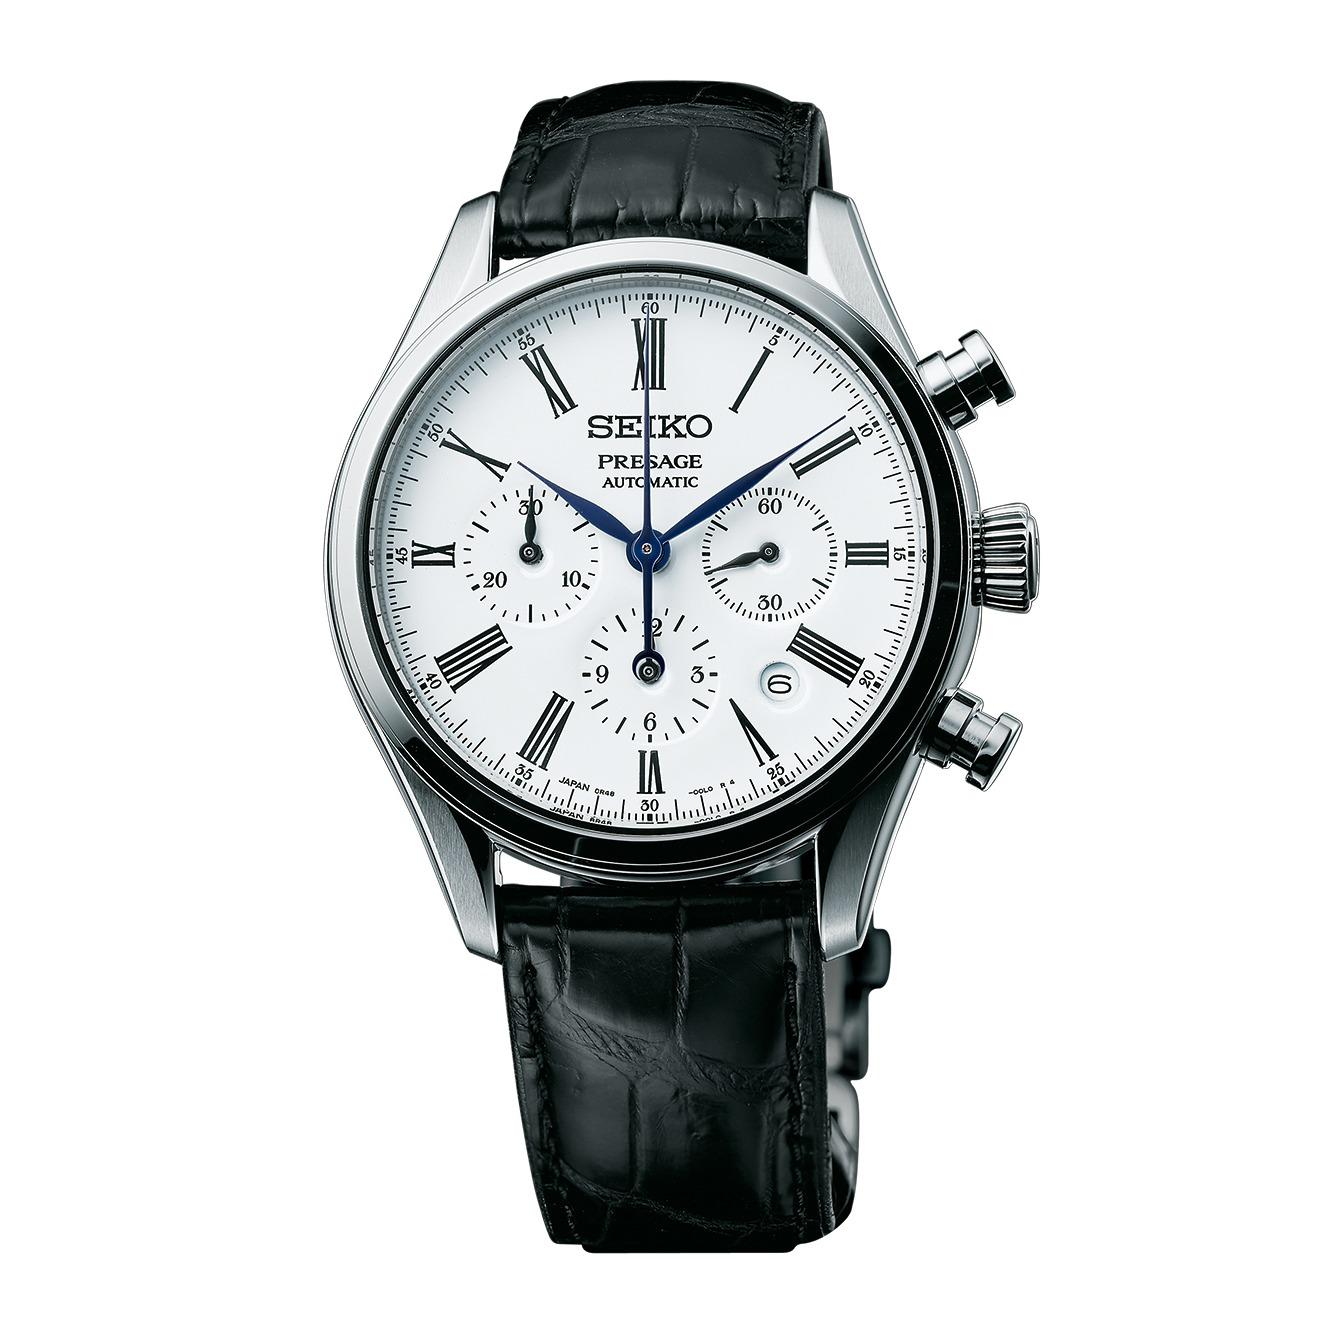 Buying Baselworld 2017 Model Brand New Seiko Presage White Enamel Dial Automatic Chronograph Mens Dress Watch Paired With Genuine Alligator Strap 8R48 Movement Srq023 New